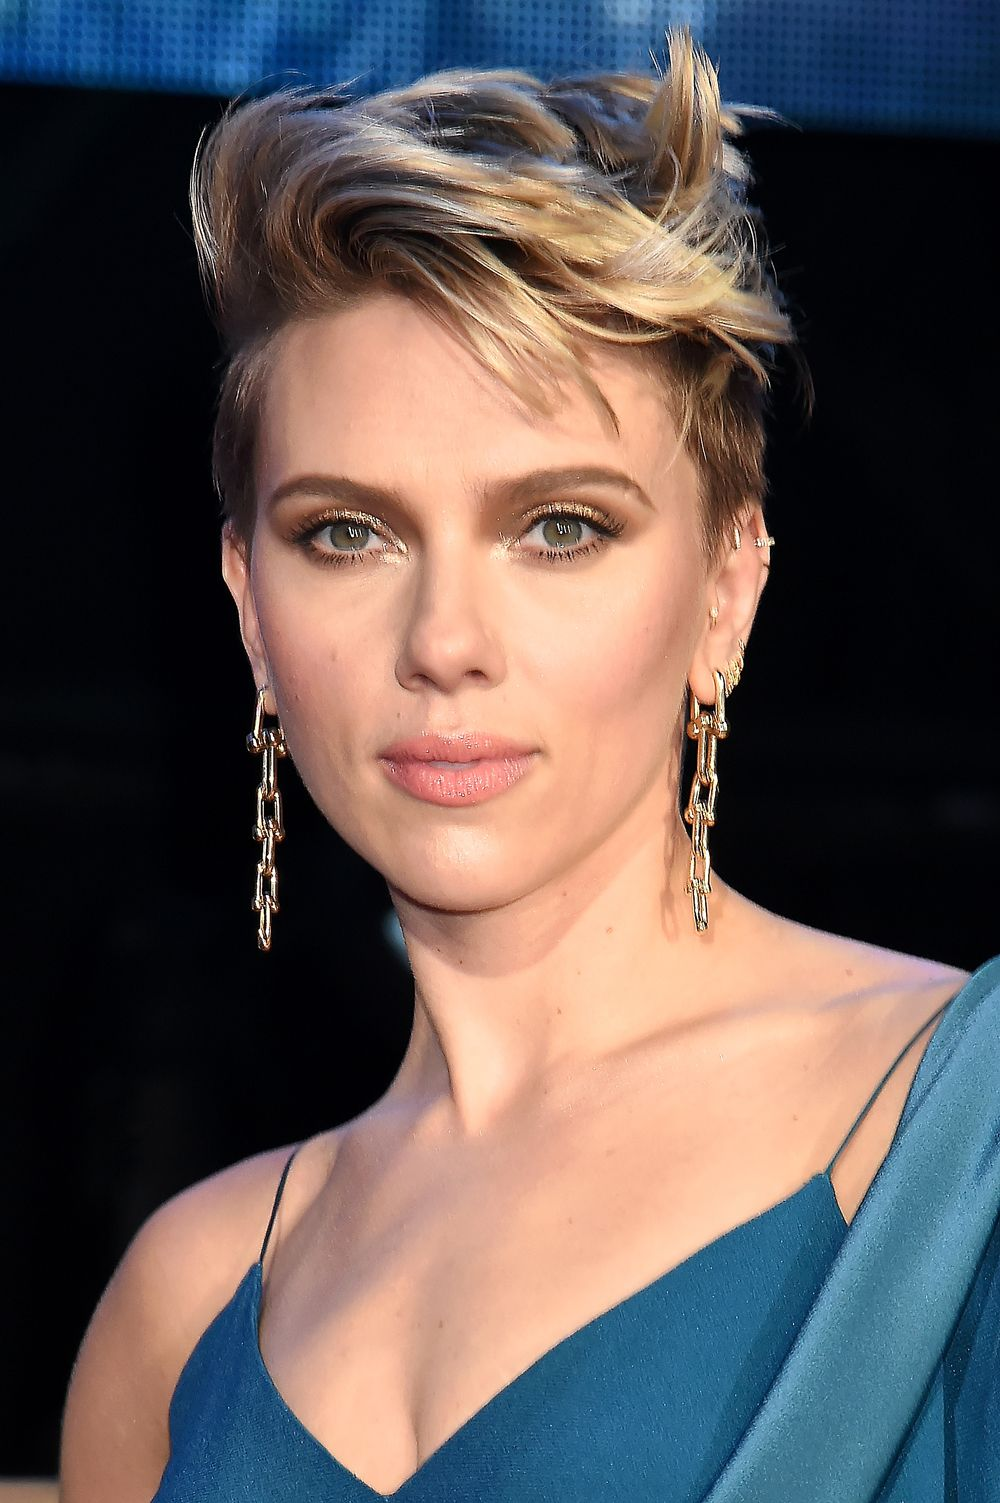 Fashionable-Faux-Hawk Celebrity Short Hairstyles for Glamorous Look